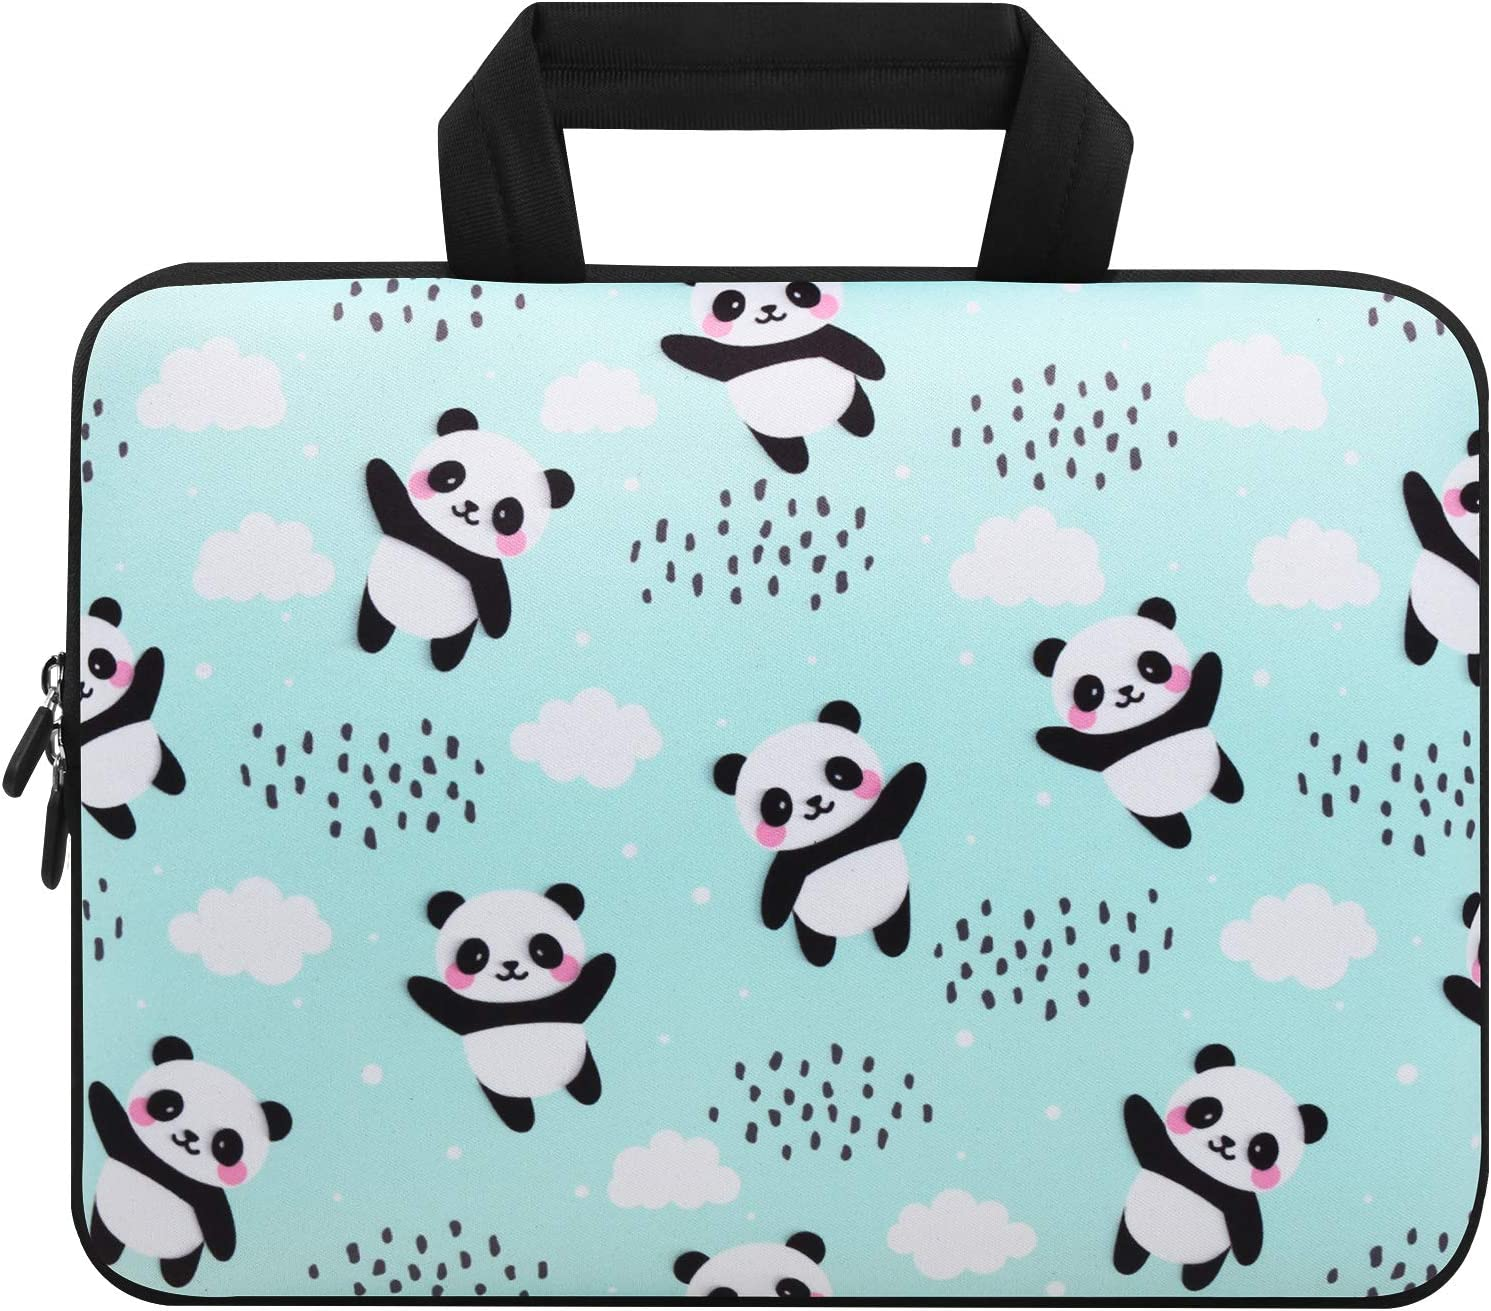 Violet Mist 11 11.6 12 12.1 Inch Laptop Sleeve Bag Carrying Case Neoprene Notebook Protective Bag Chromebook Tablet Cover with Handle for Office Men Women(Panda,12